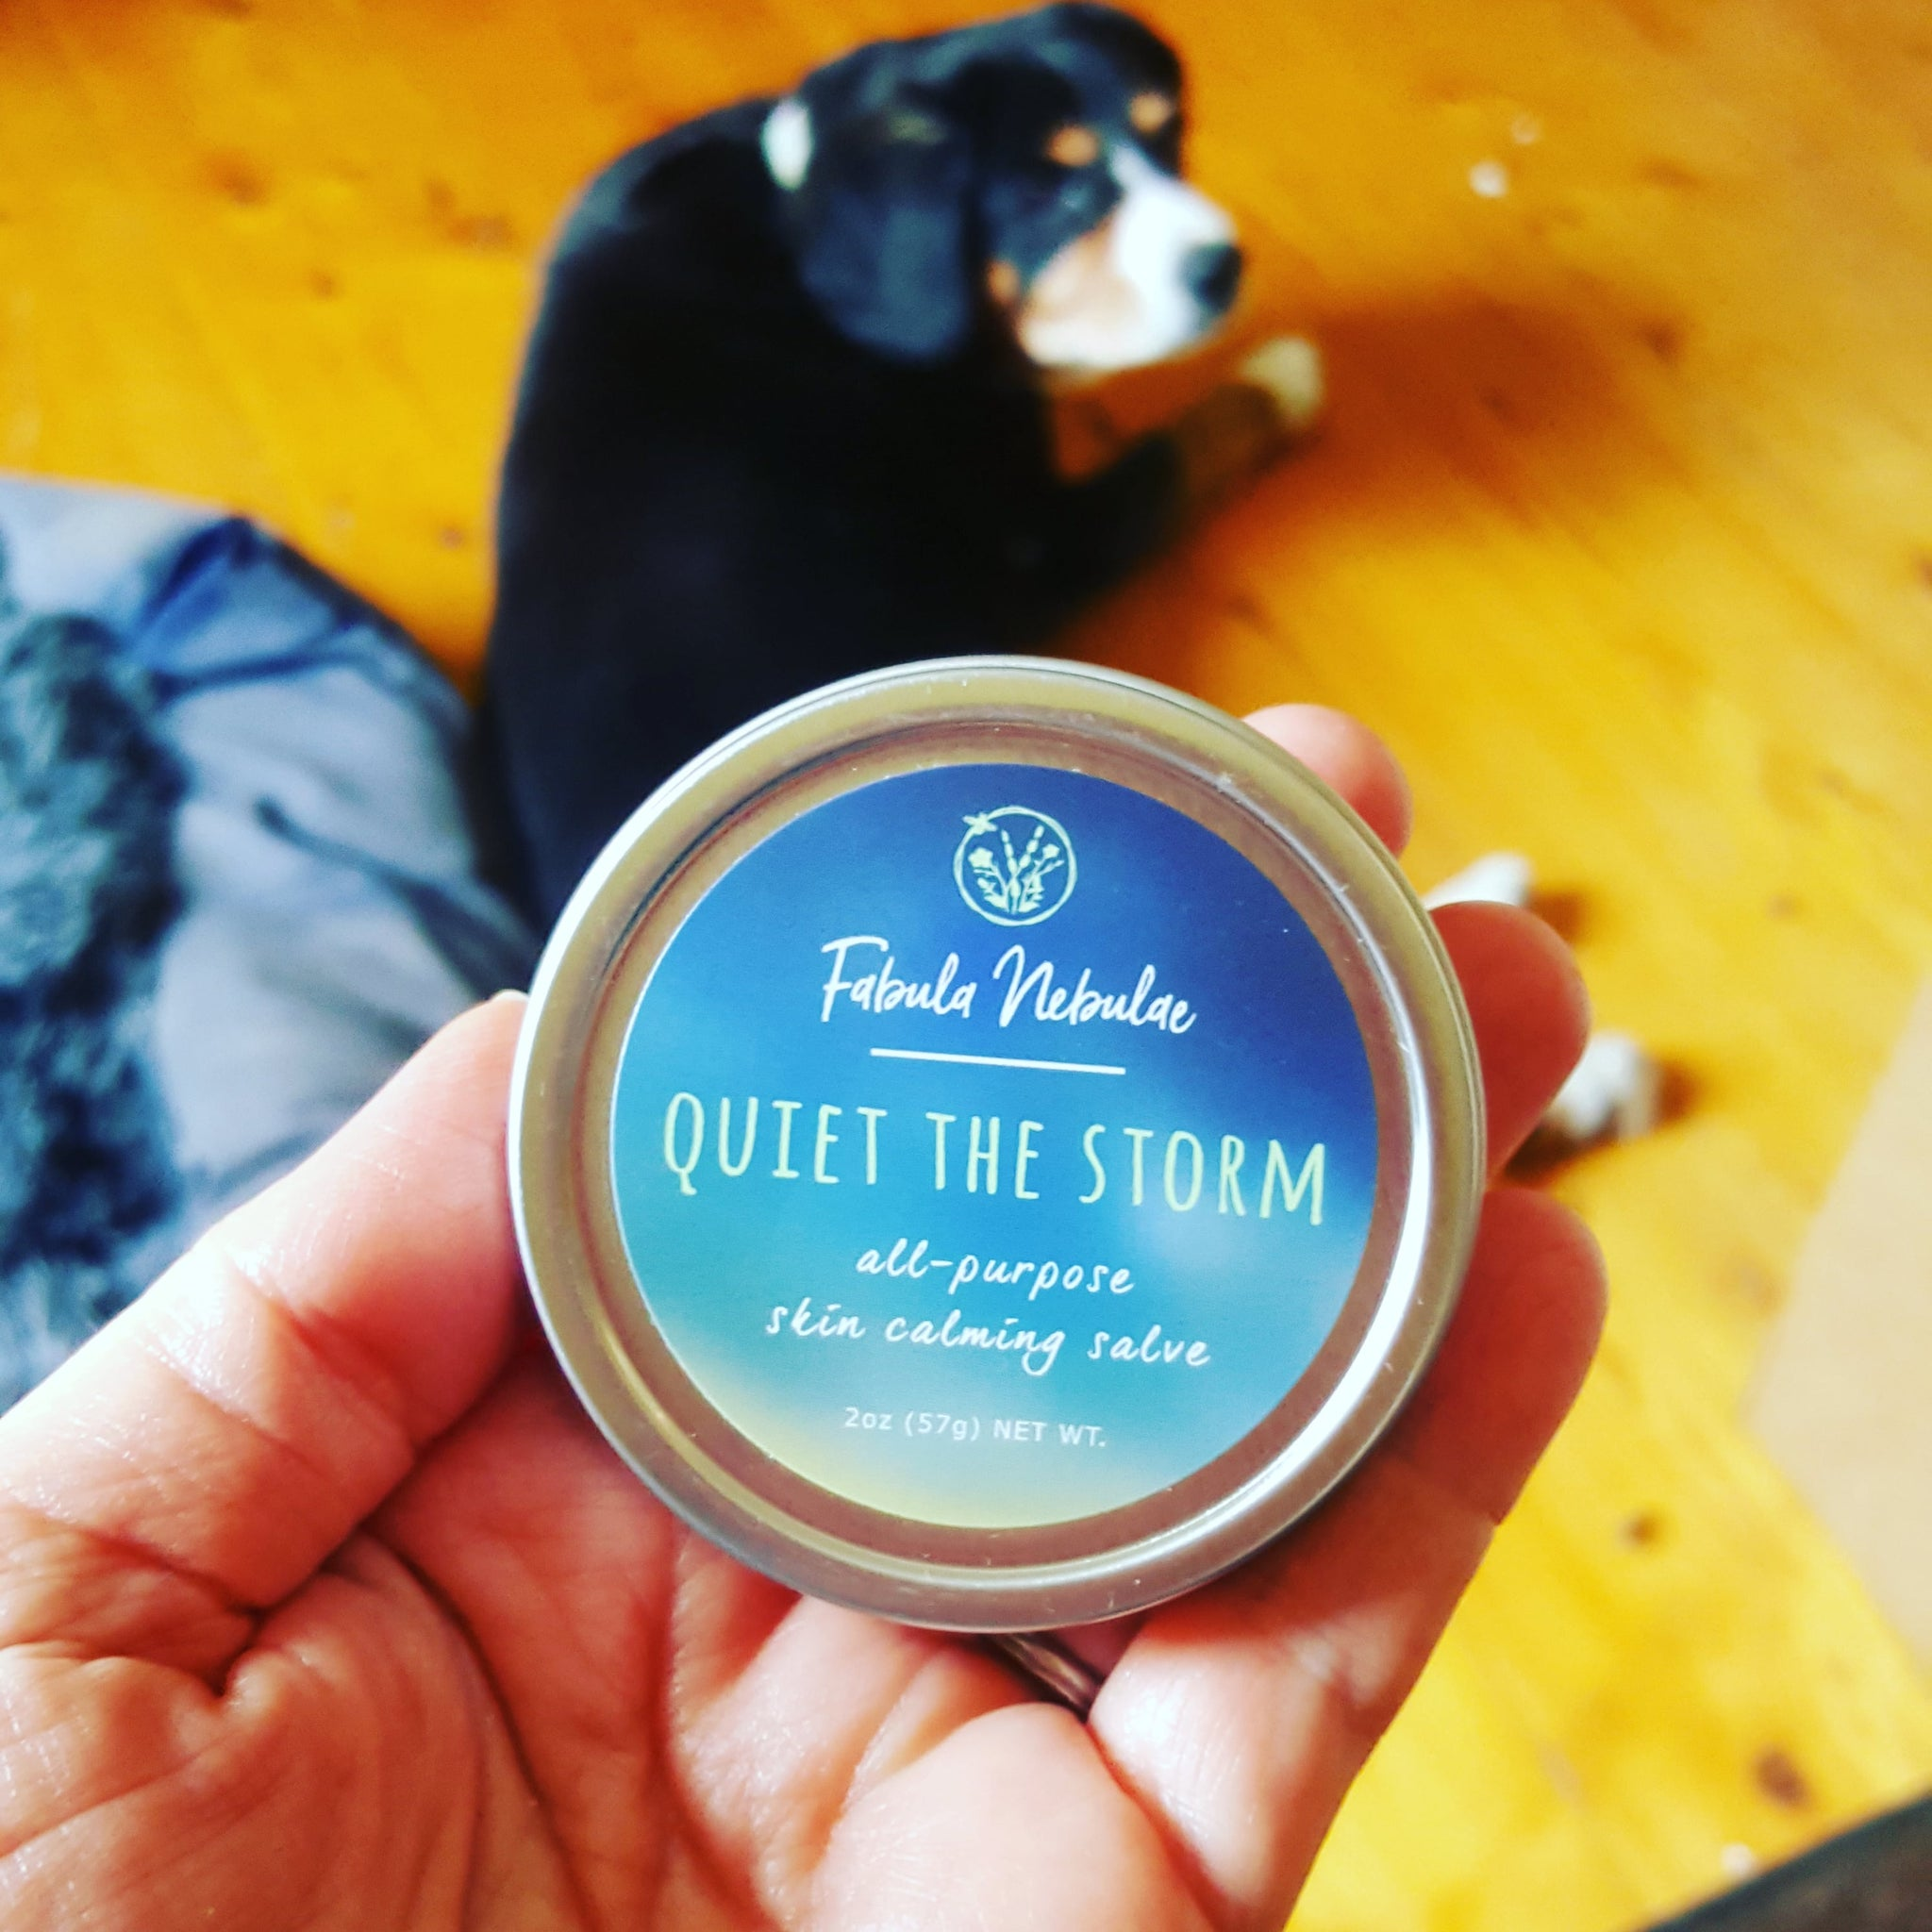 Quiet the Storm skin calming salve